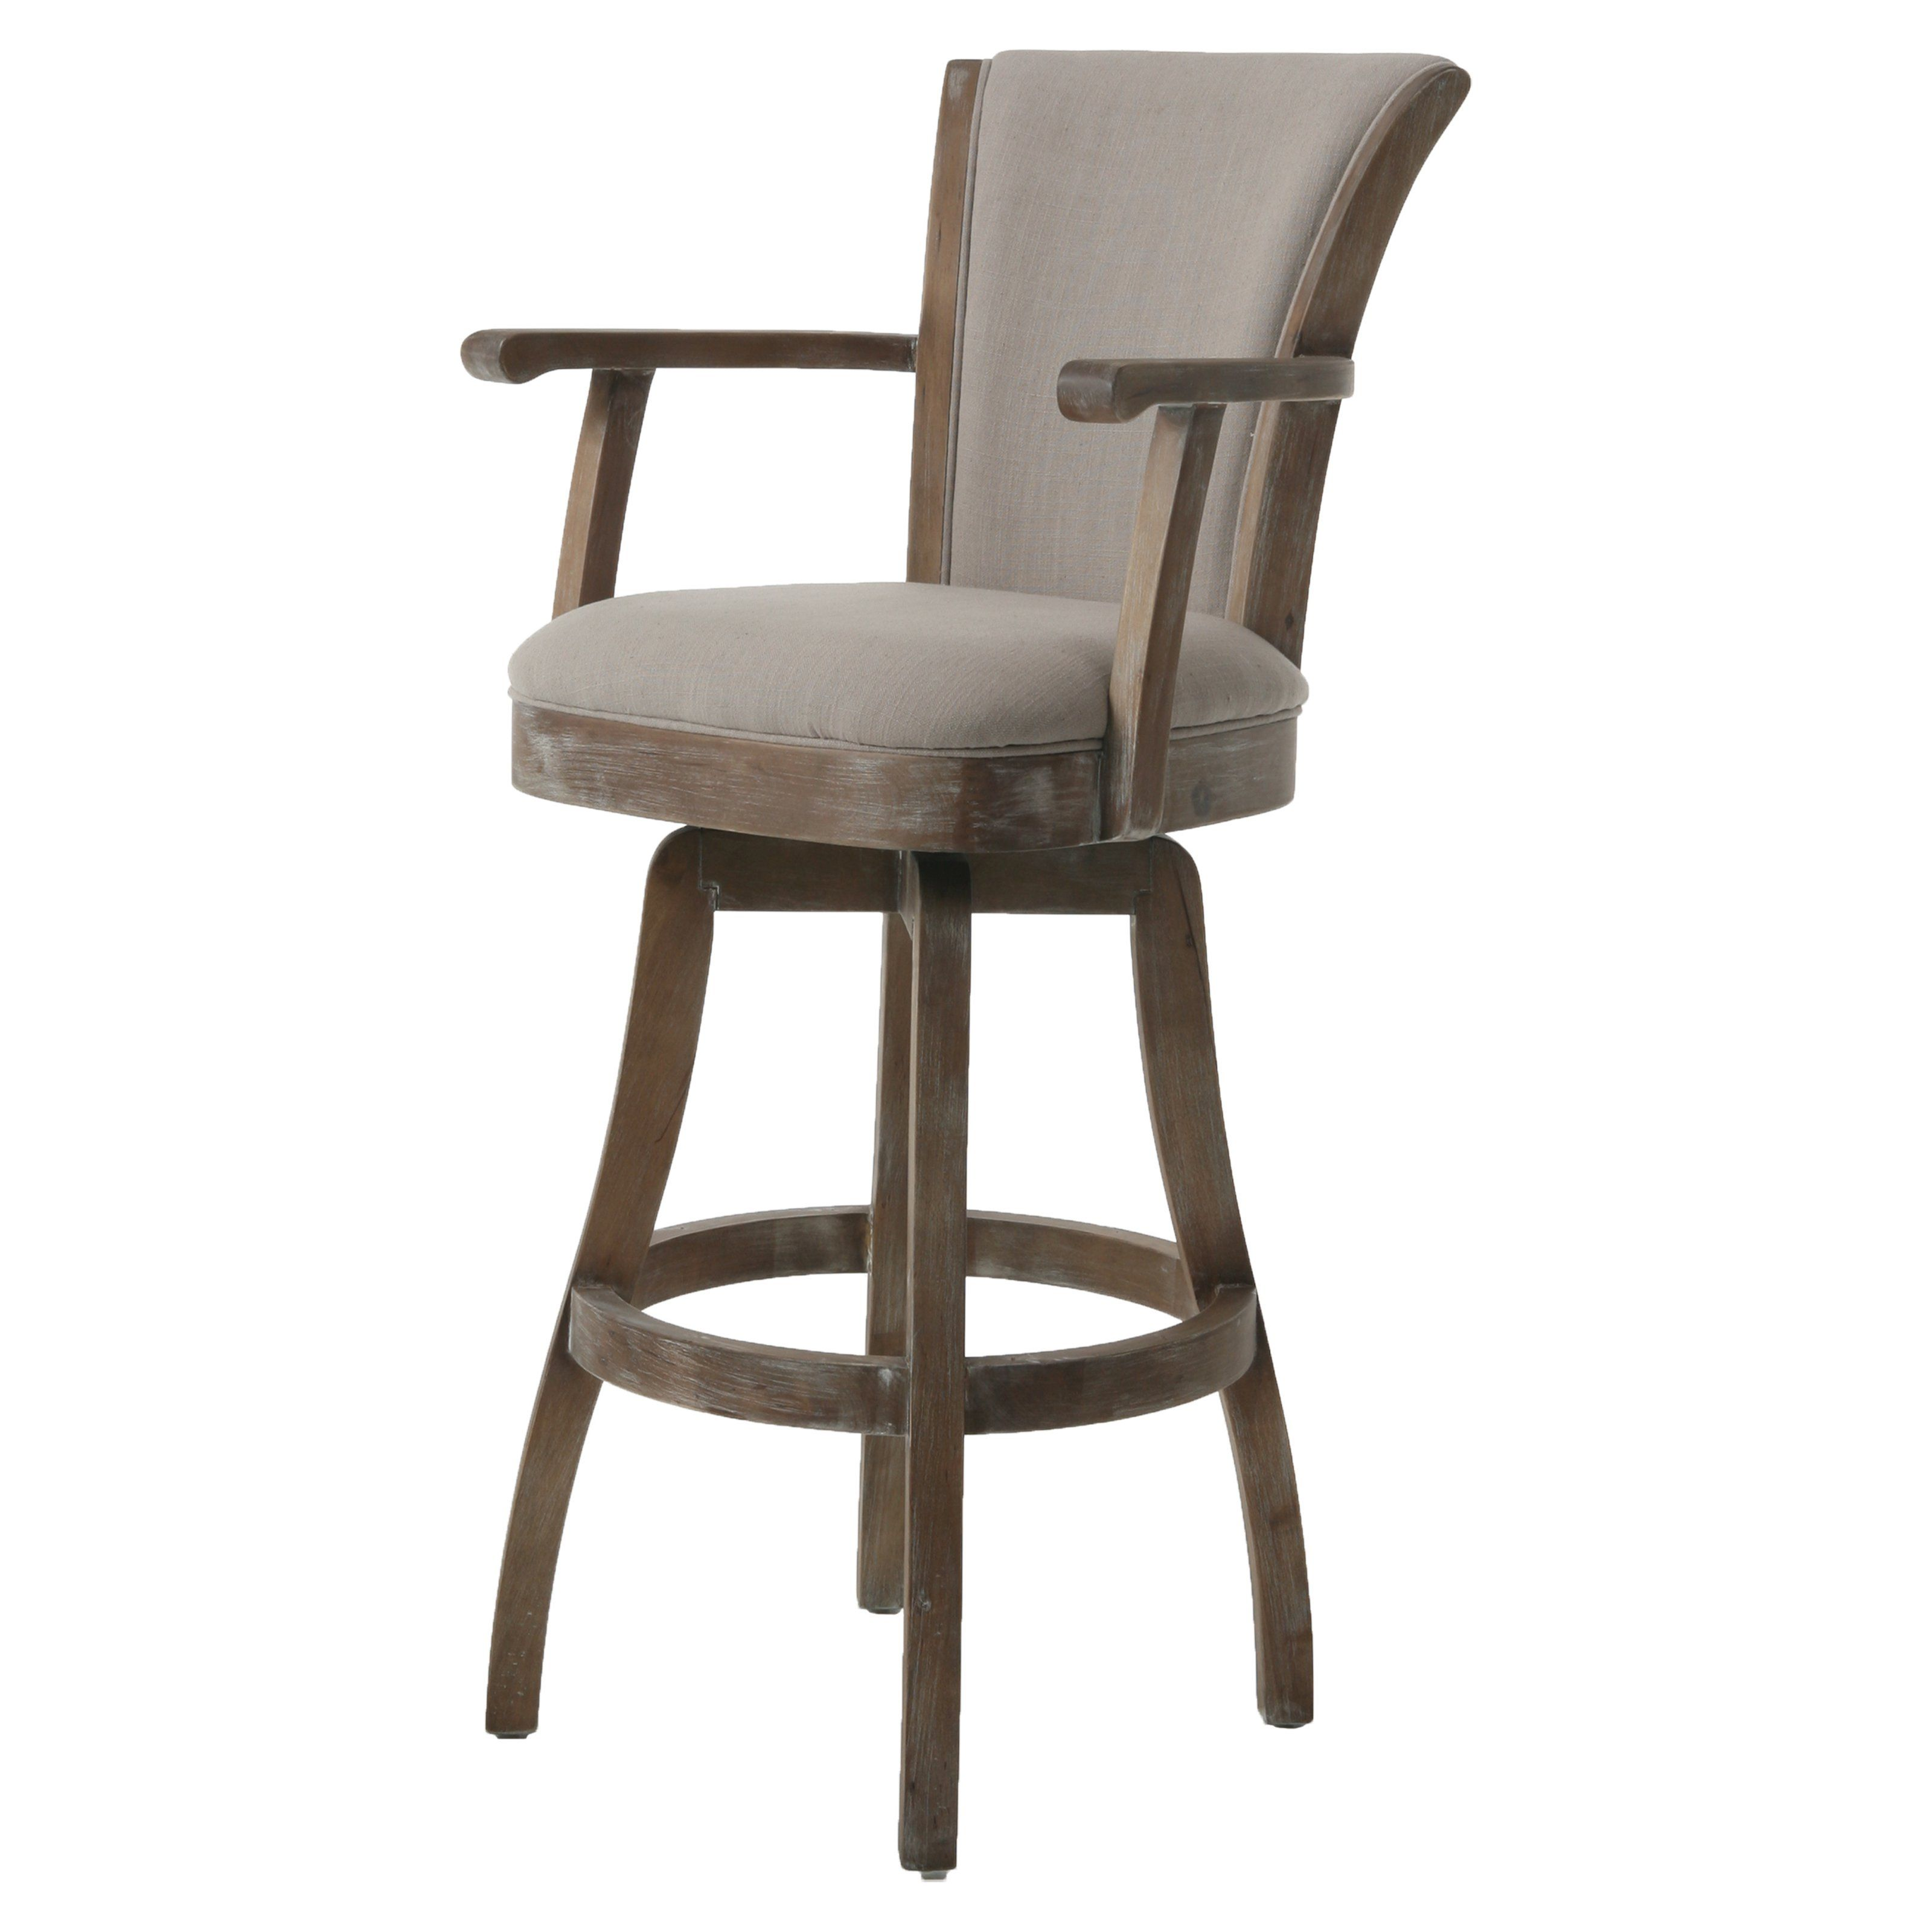 Impacterra Glenwood Swivel Bar Stool With Arms From Hayneedlecom